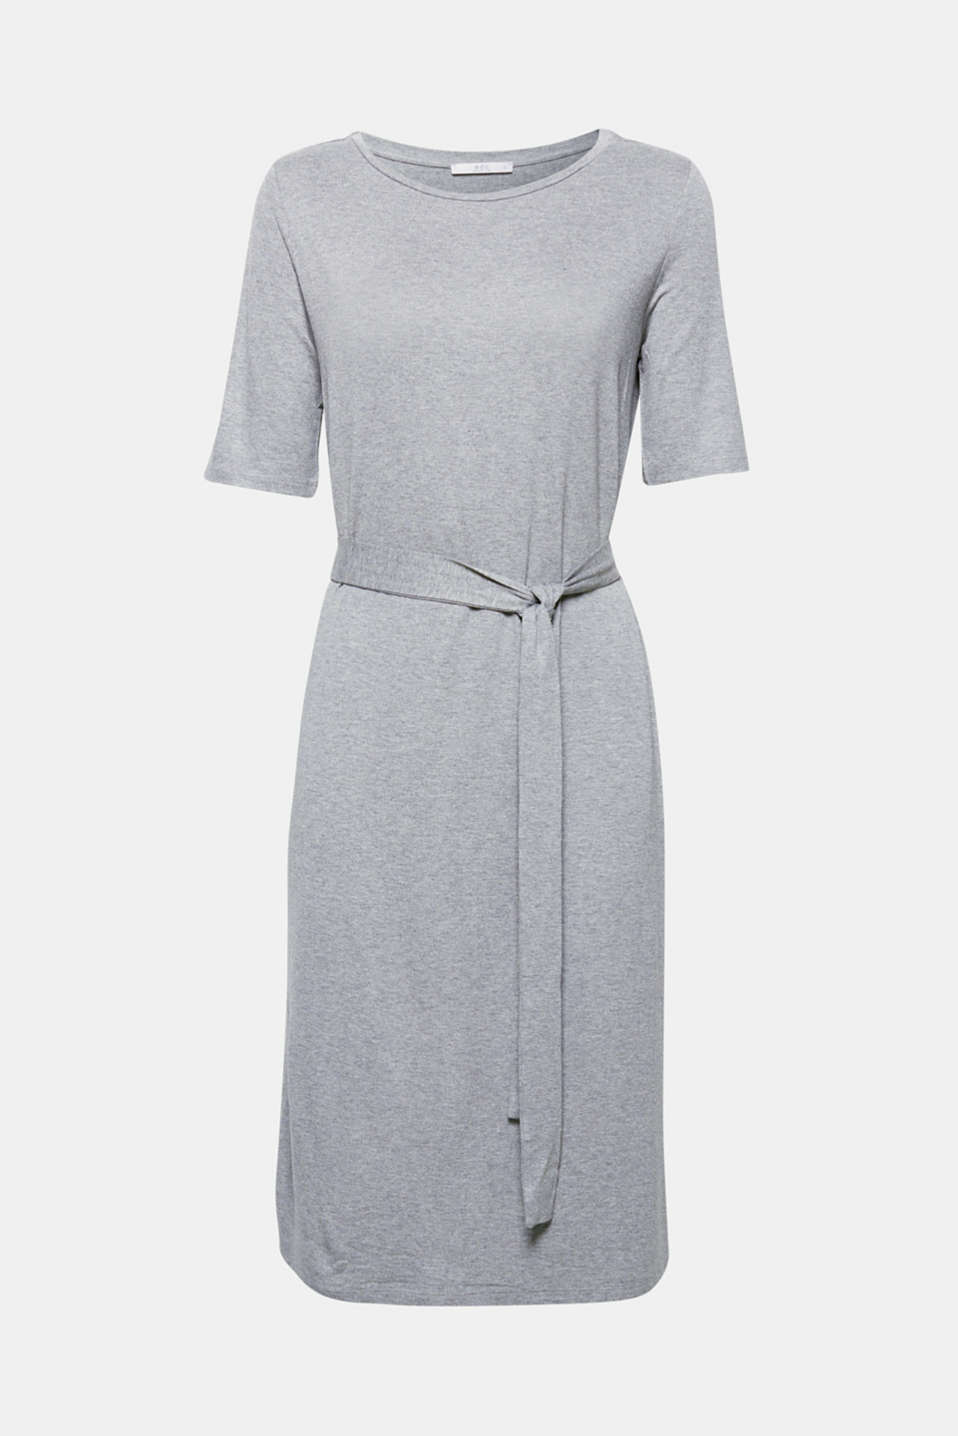 Loose and comfortable for every figure type, this dress made of mottled stretch jersey in a trendy midi length features a smocked waist at the back and a fixed tie-around belt!